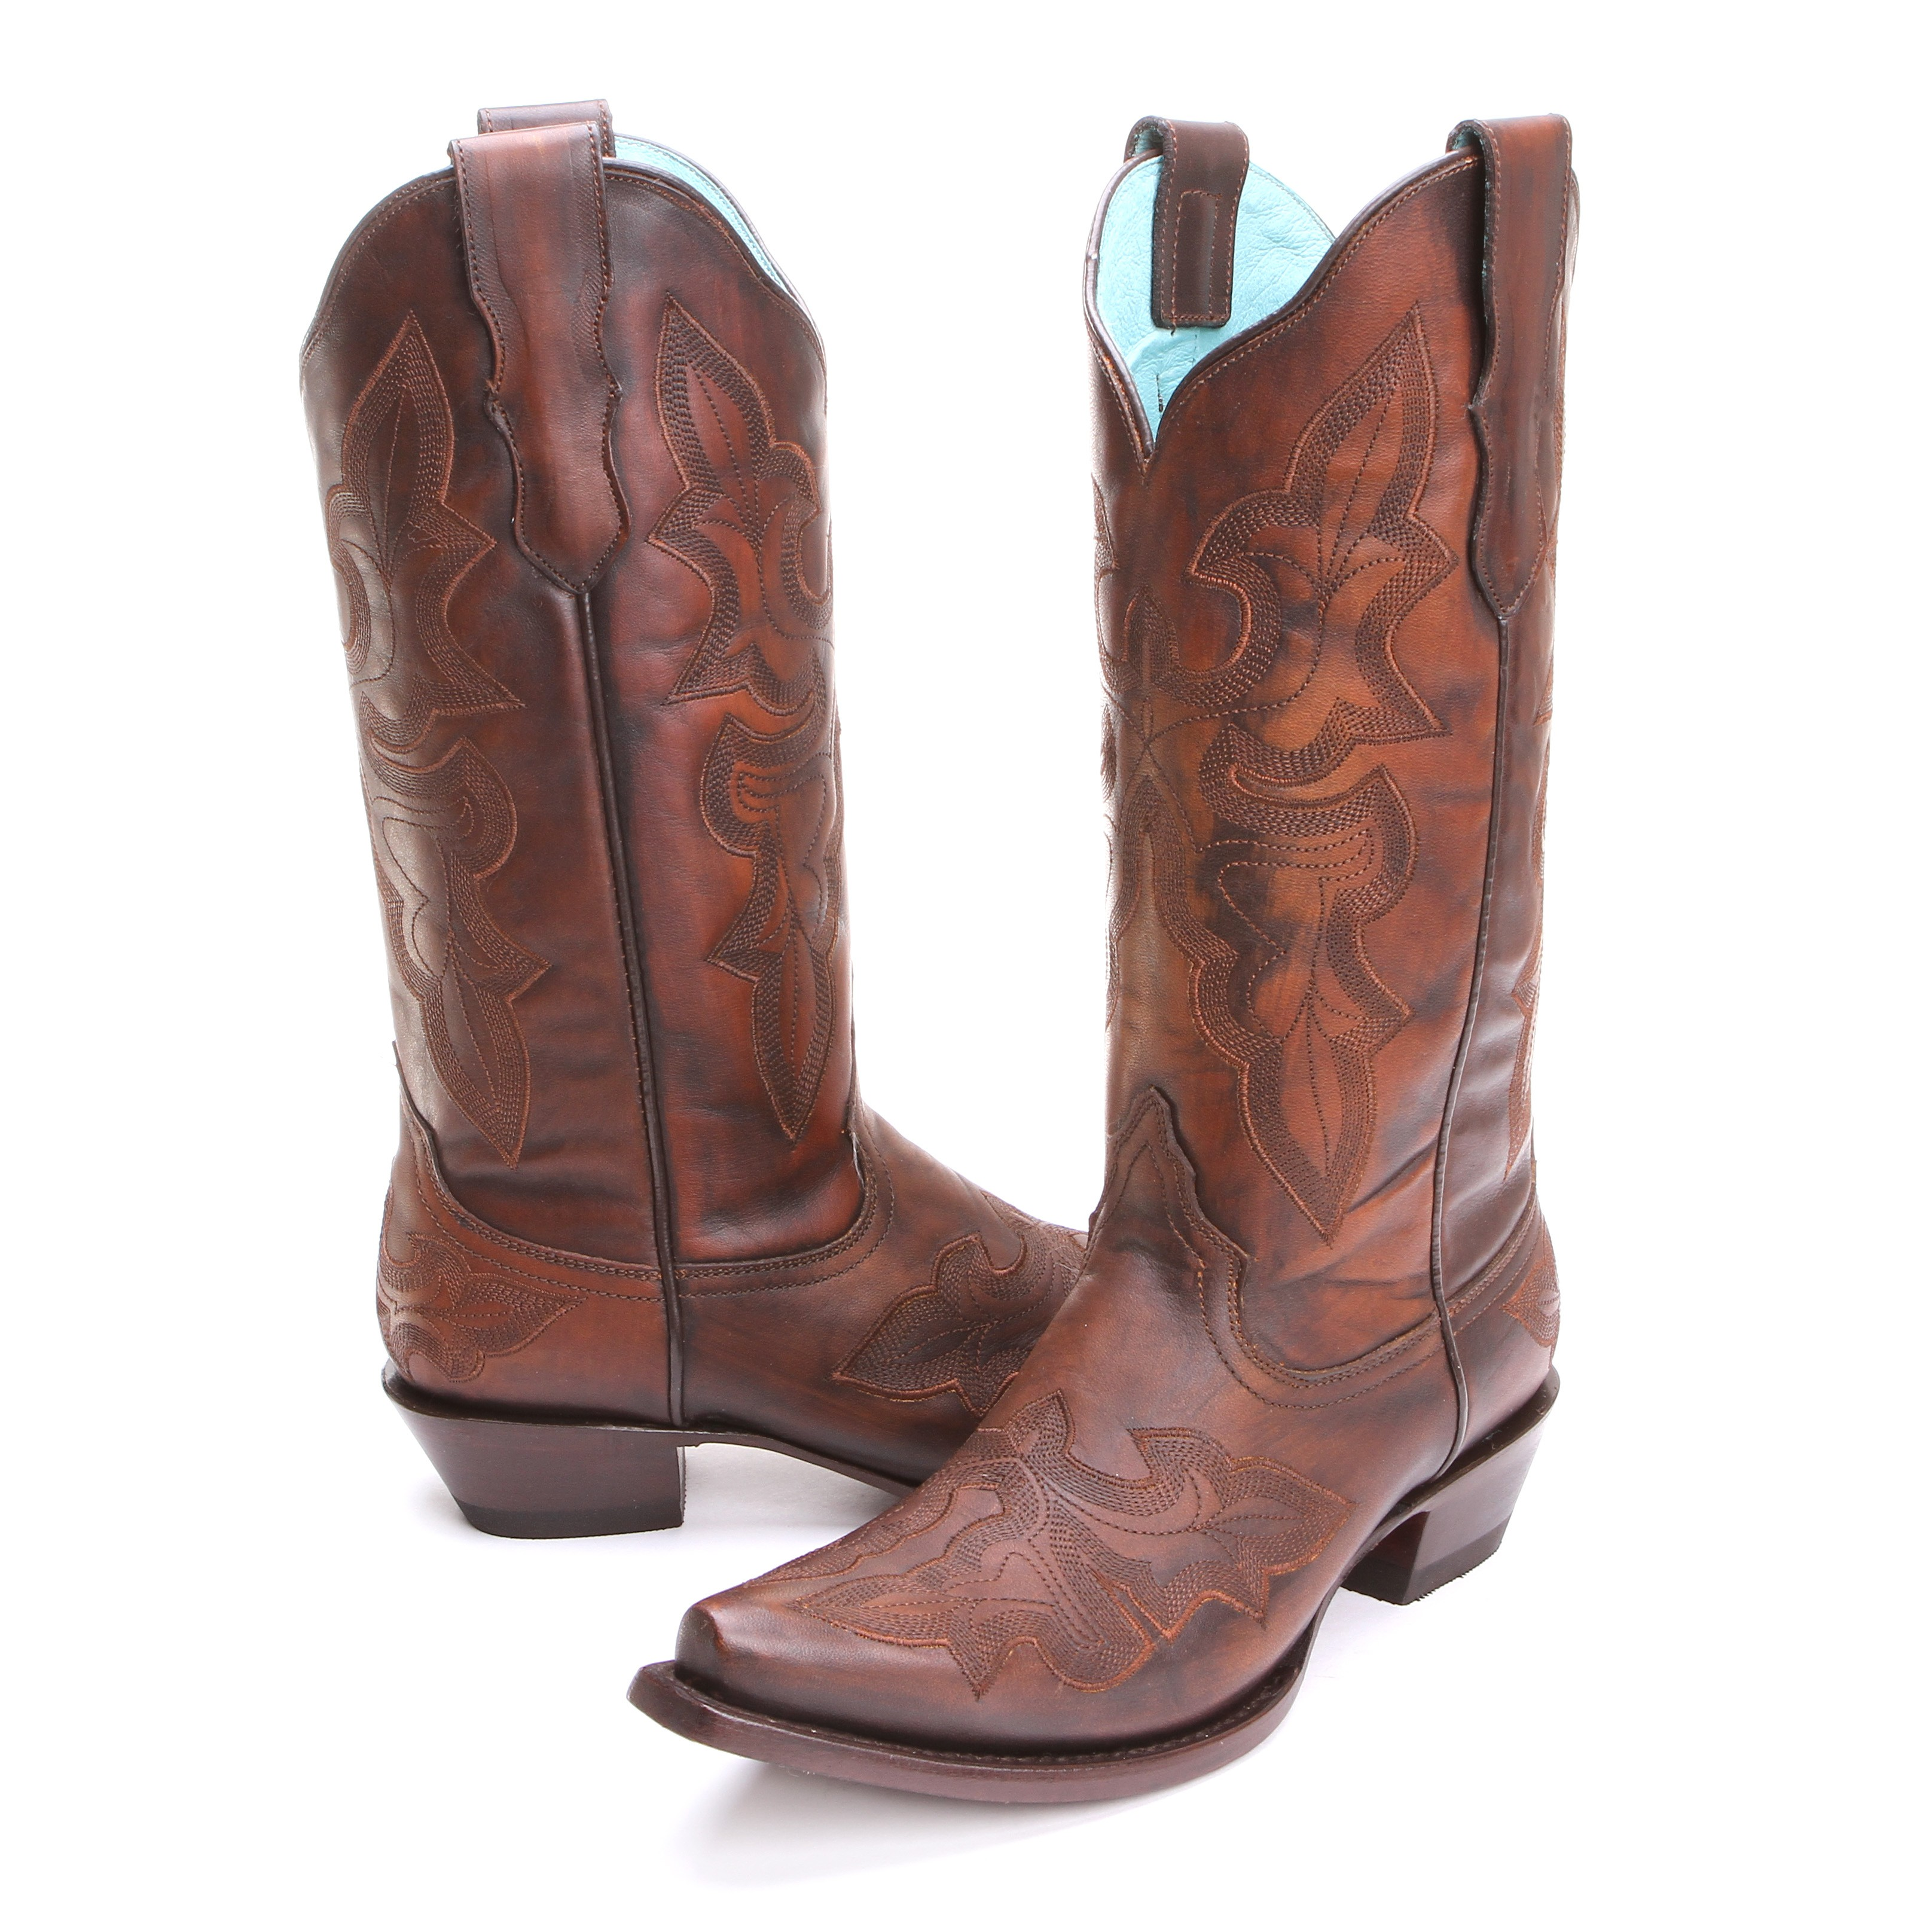 Cowboy Boots Stores Near Me - Boot Yc